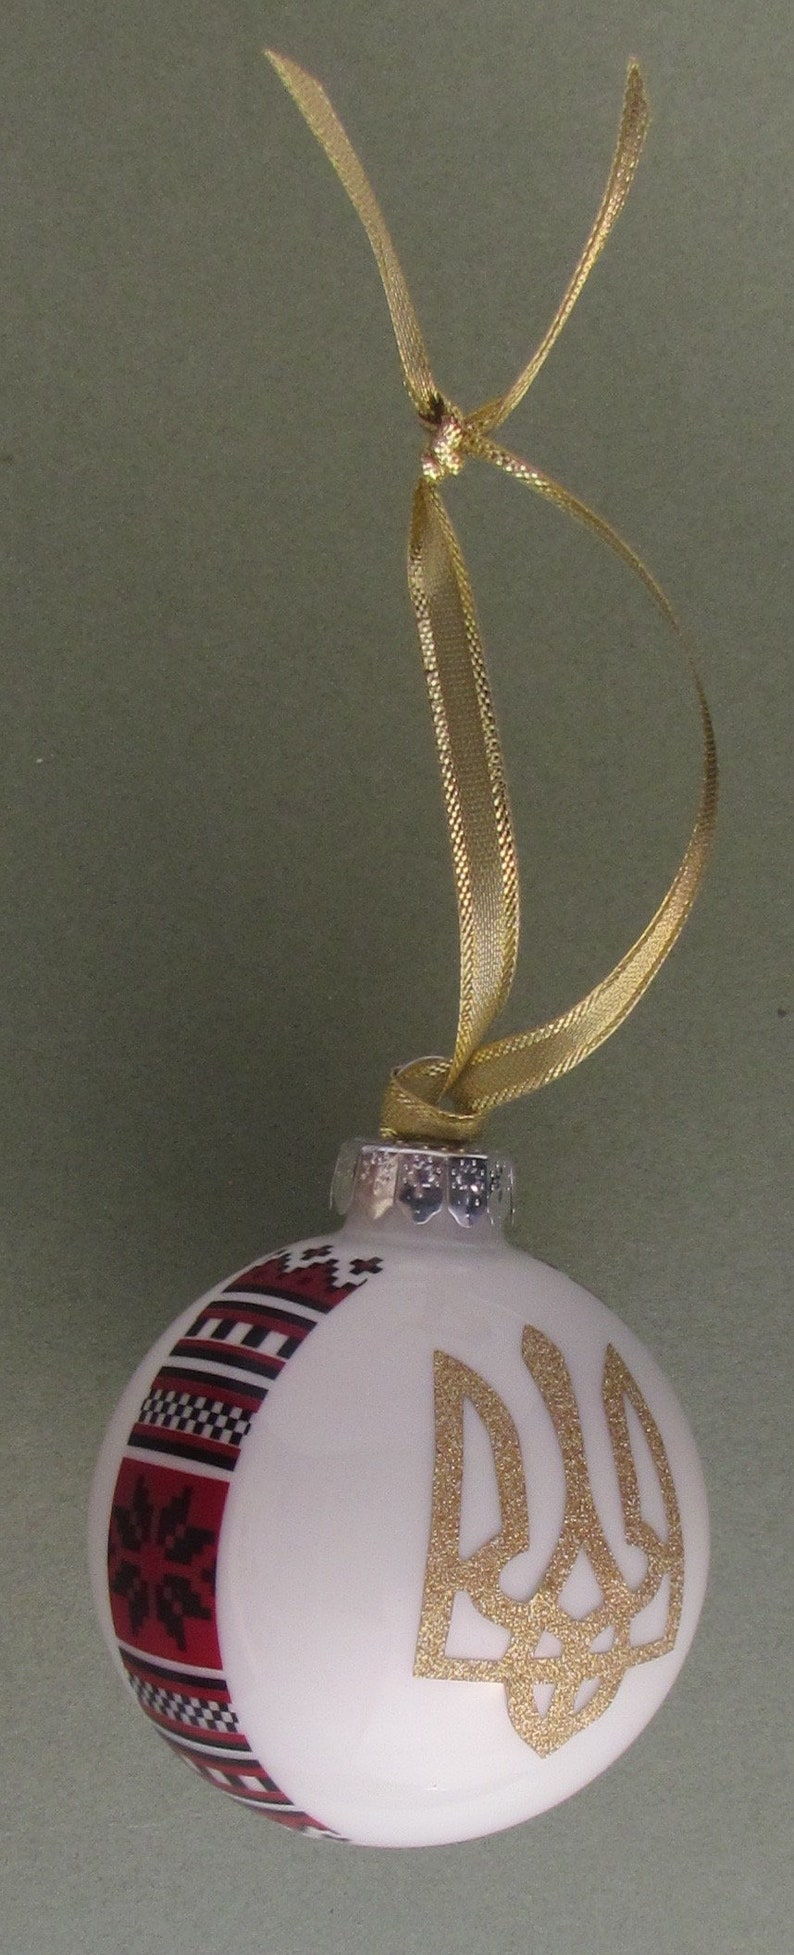 2.5 Ukrainian Glass Xmas Ball Ornament with Trident /& Embroidery Patterns